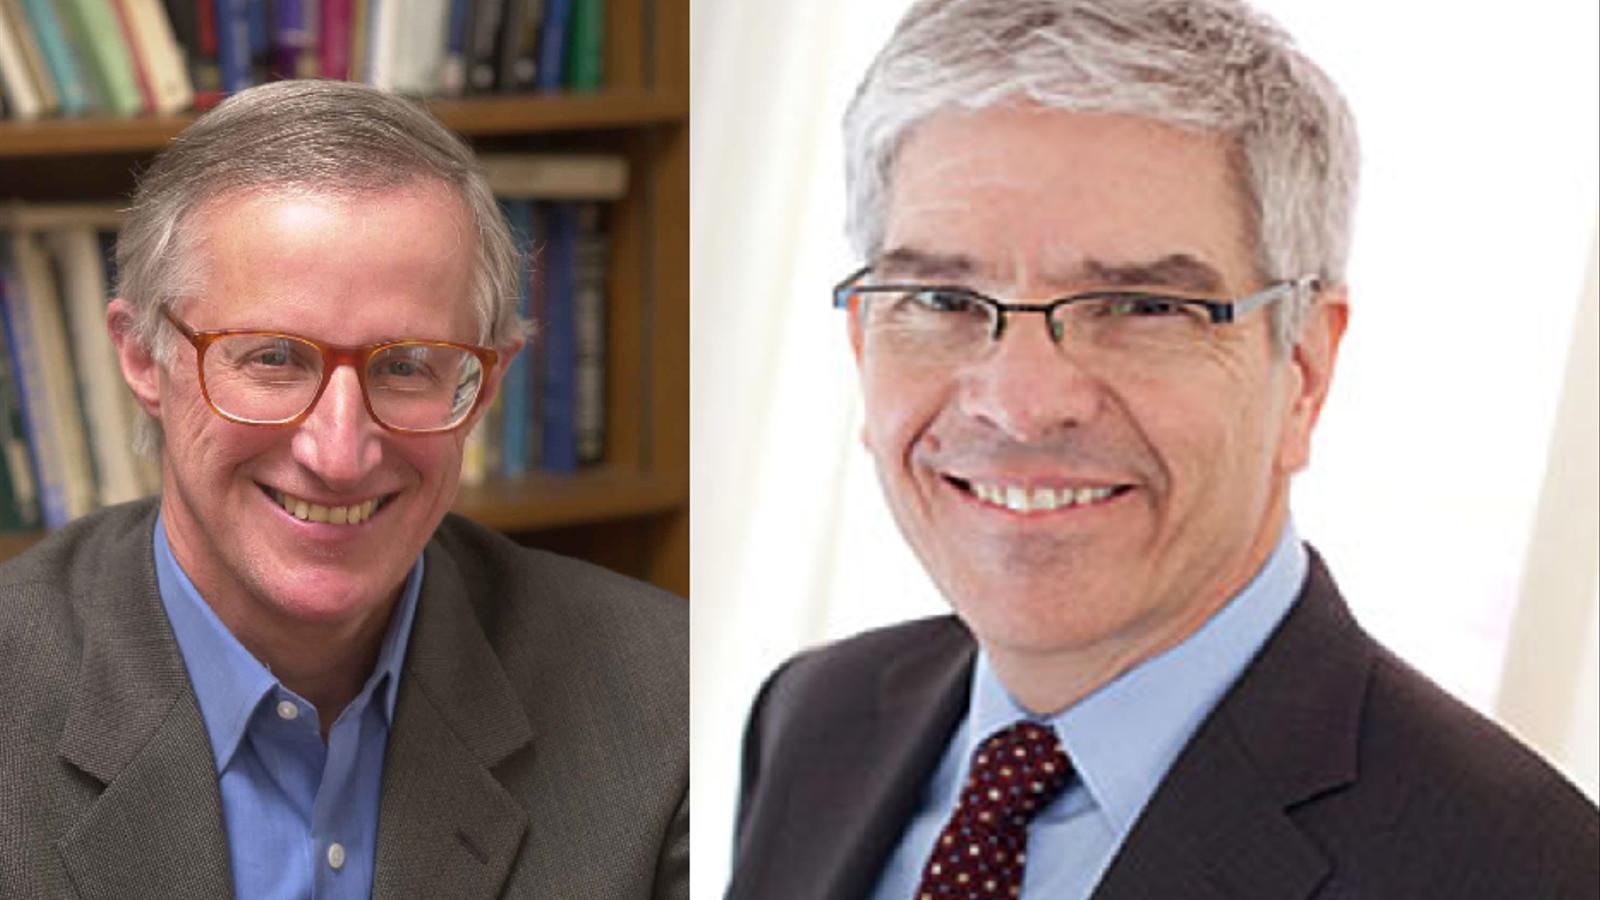 William D. Nordhaus i Paul M. Romer guanyen el premi Nobel d'economia